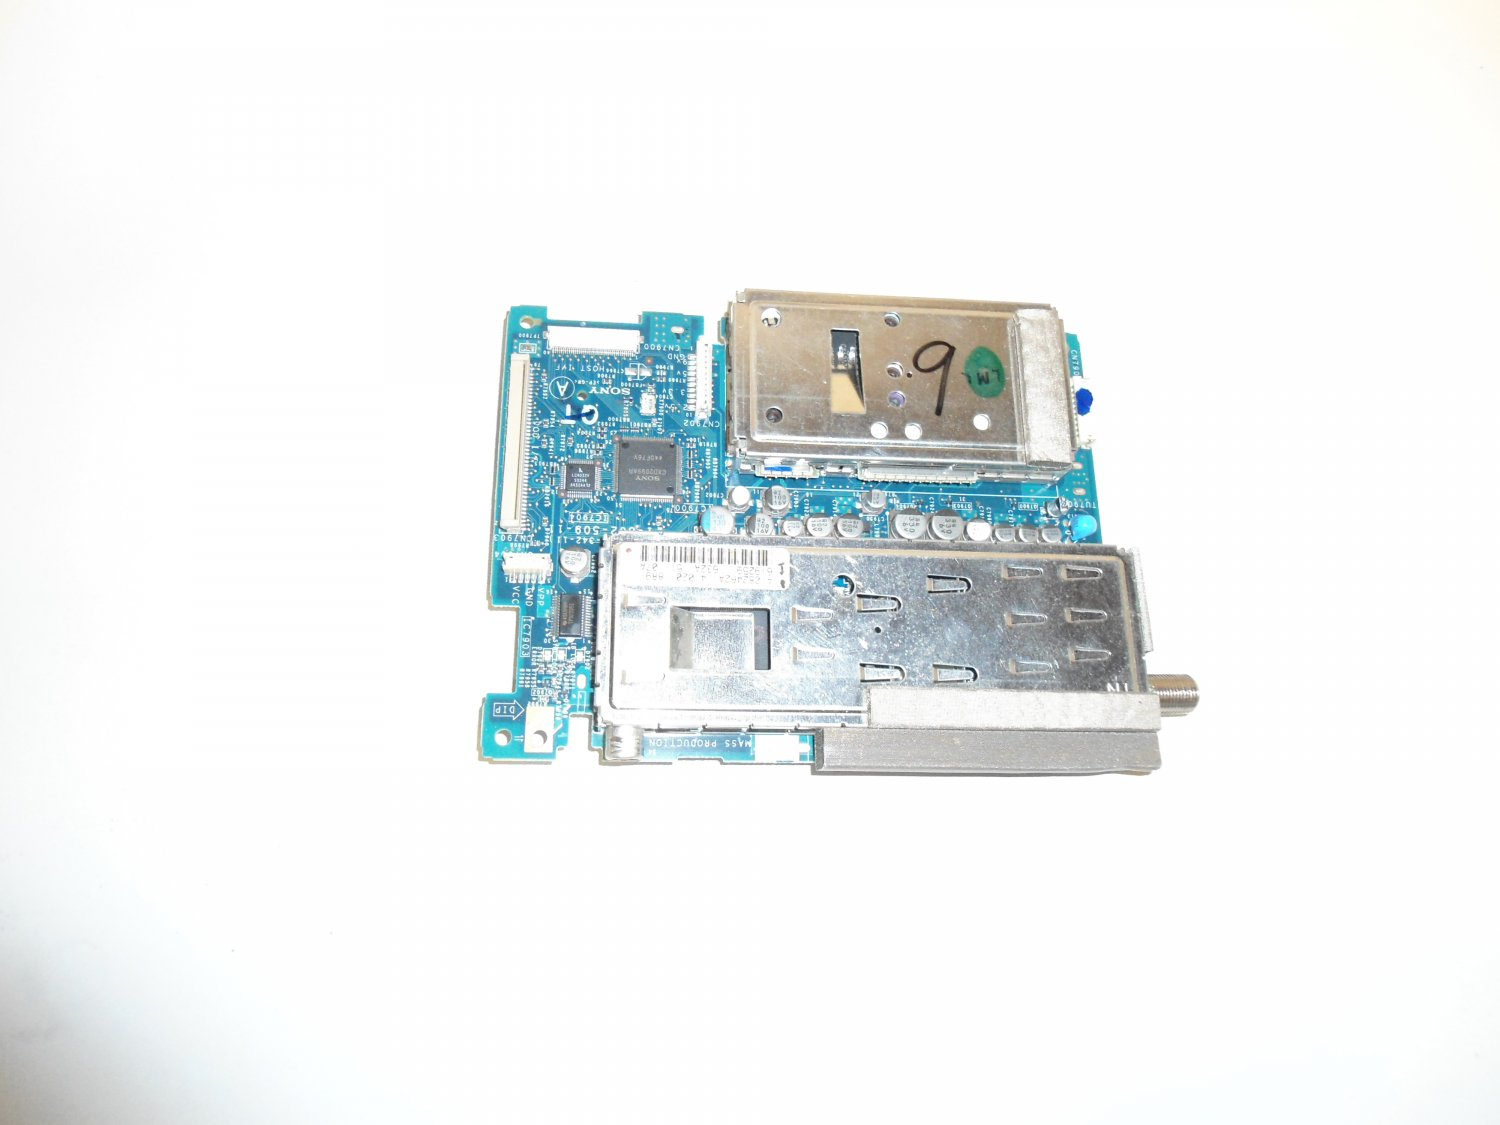 1-862-509-11 Video RF Tuner Board for SONY KDF-50WE655